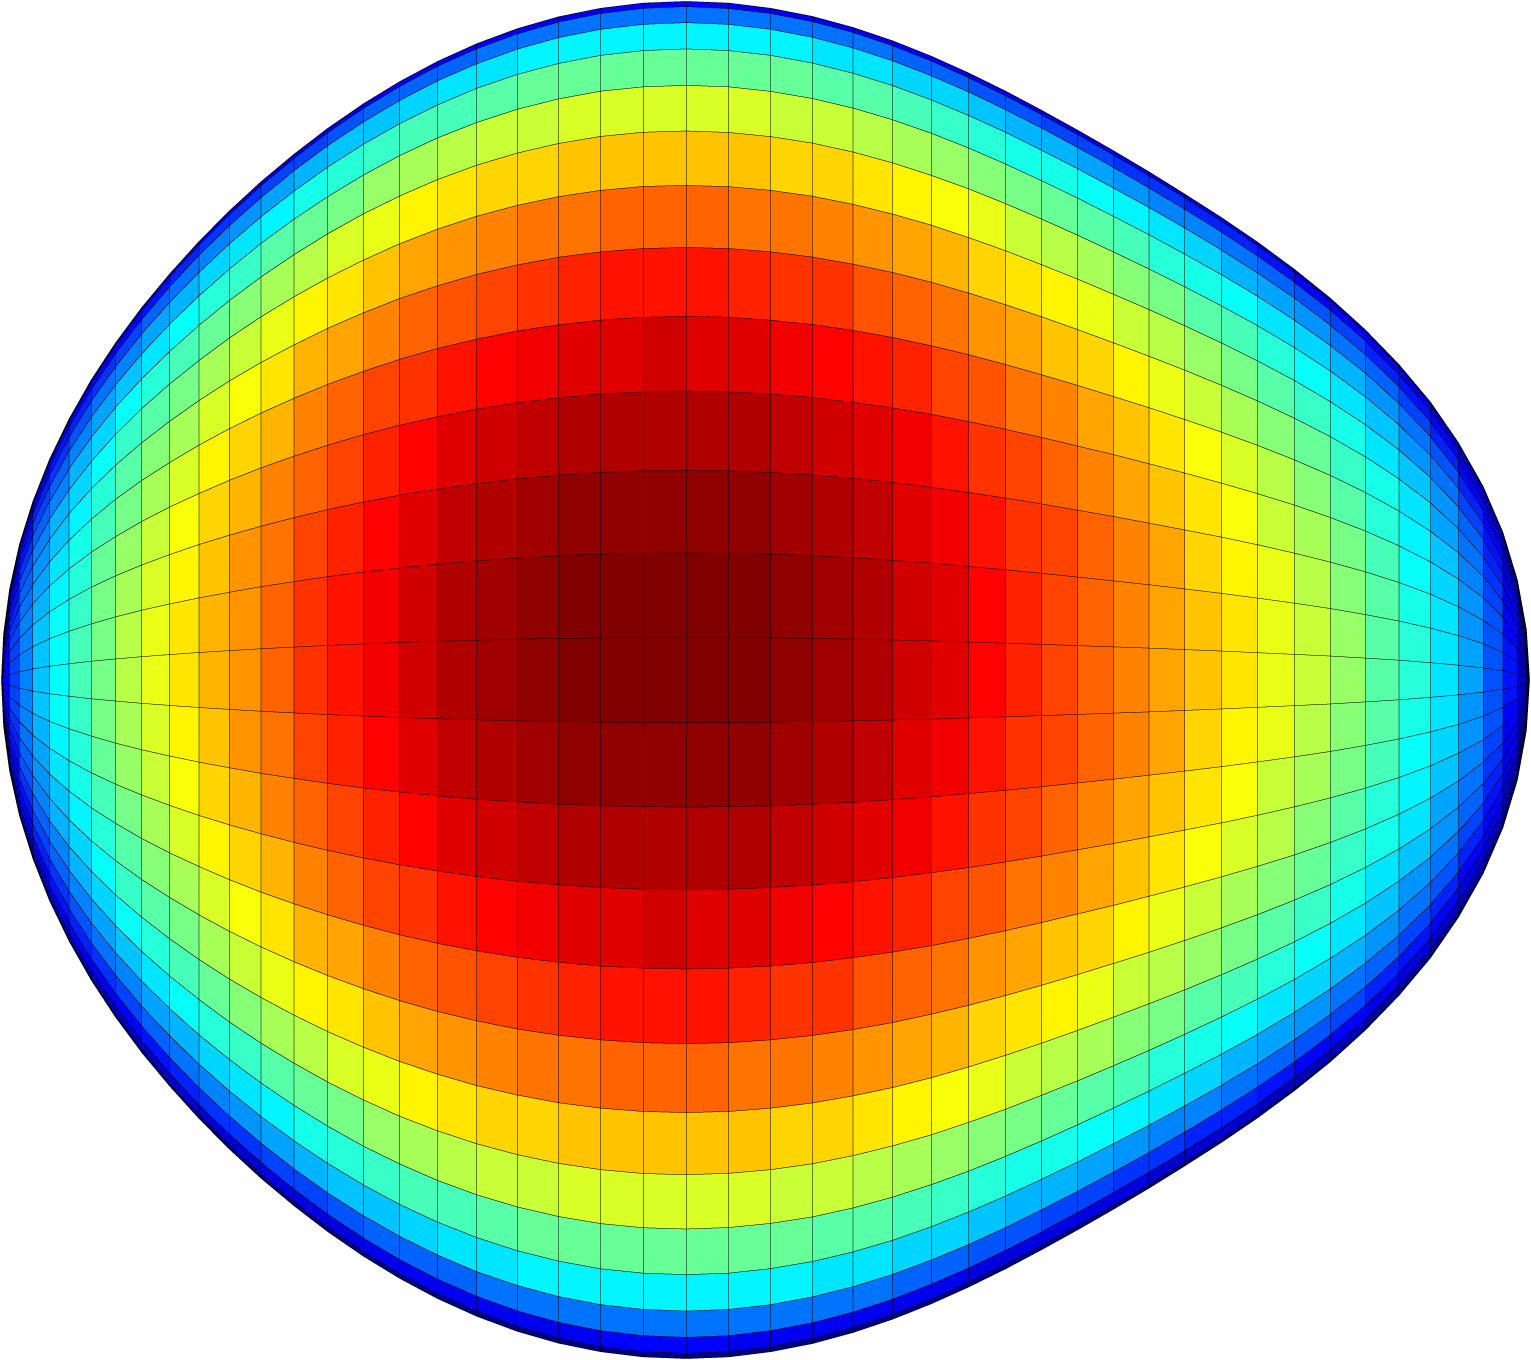 A graphical representation of the pear-shaped nucleus of an exotic atom. The shape of the nucleus could give clues to why the universe contains more matter than antimatter. Image credit: Liam Gaffney and Peter Butler, University of Liverpool